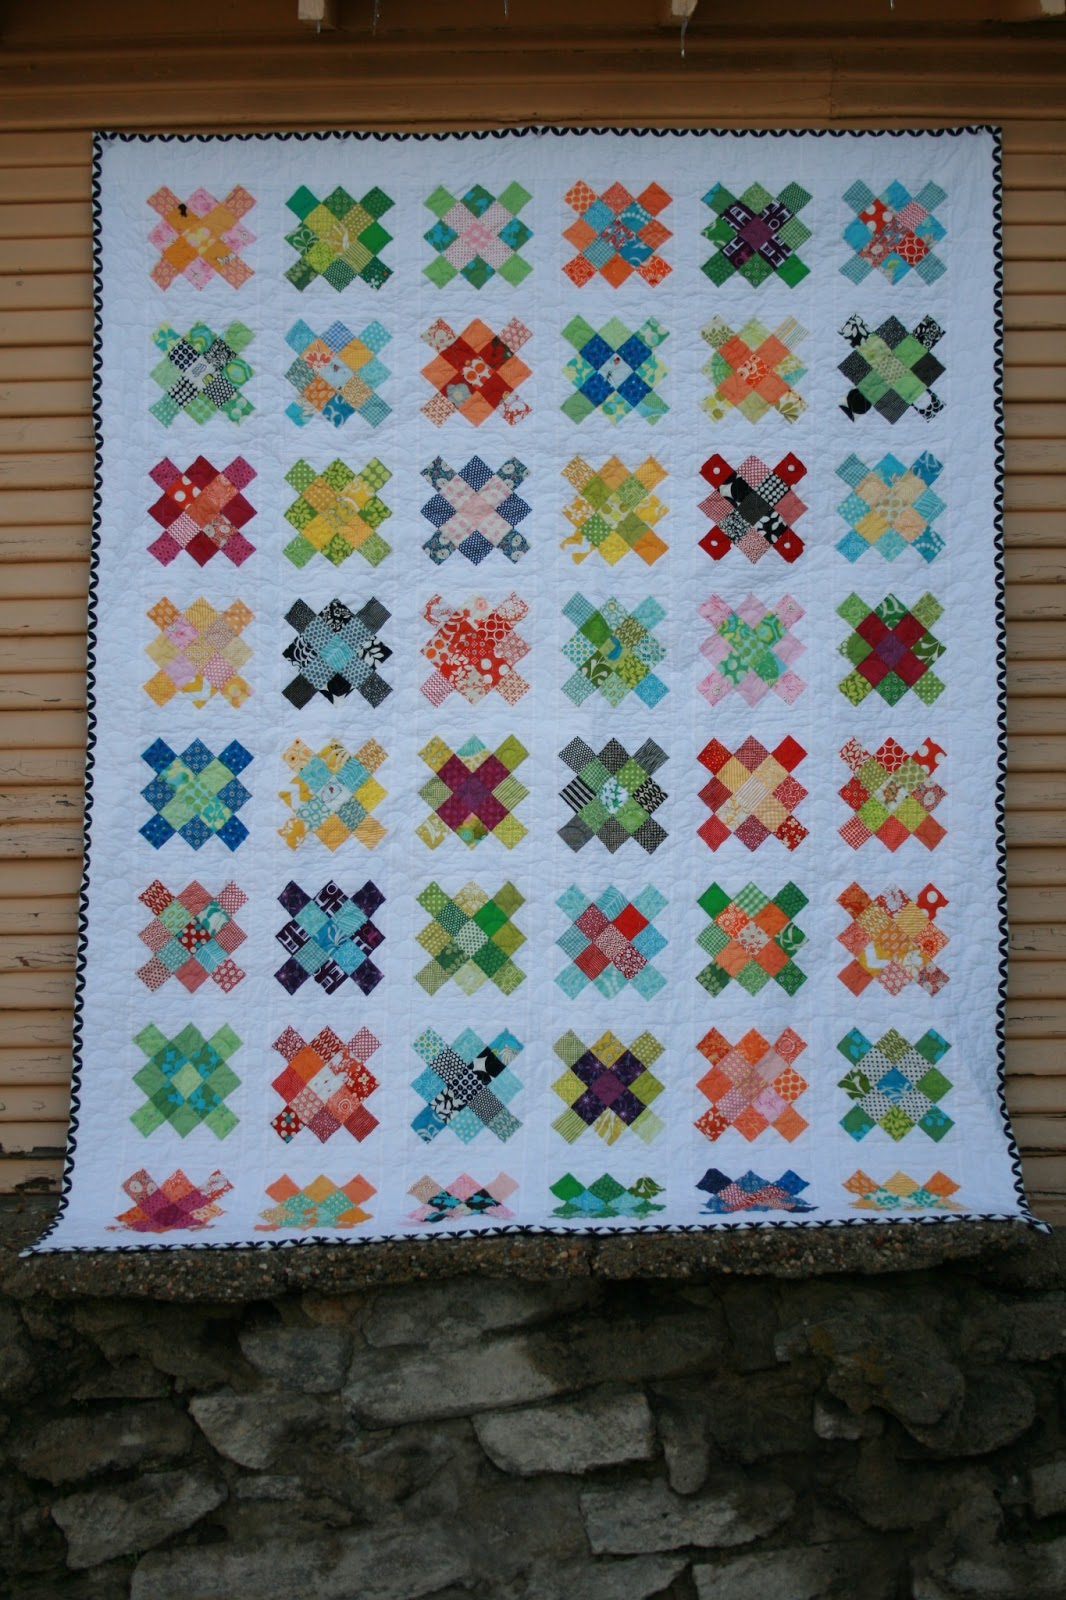 Leedle Deedle Quilts Granny Square Quilt Finished